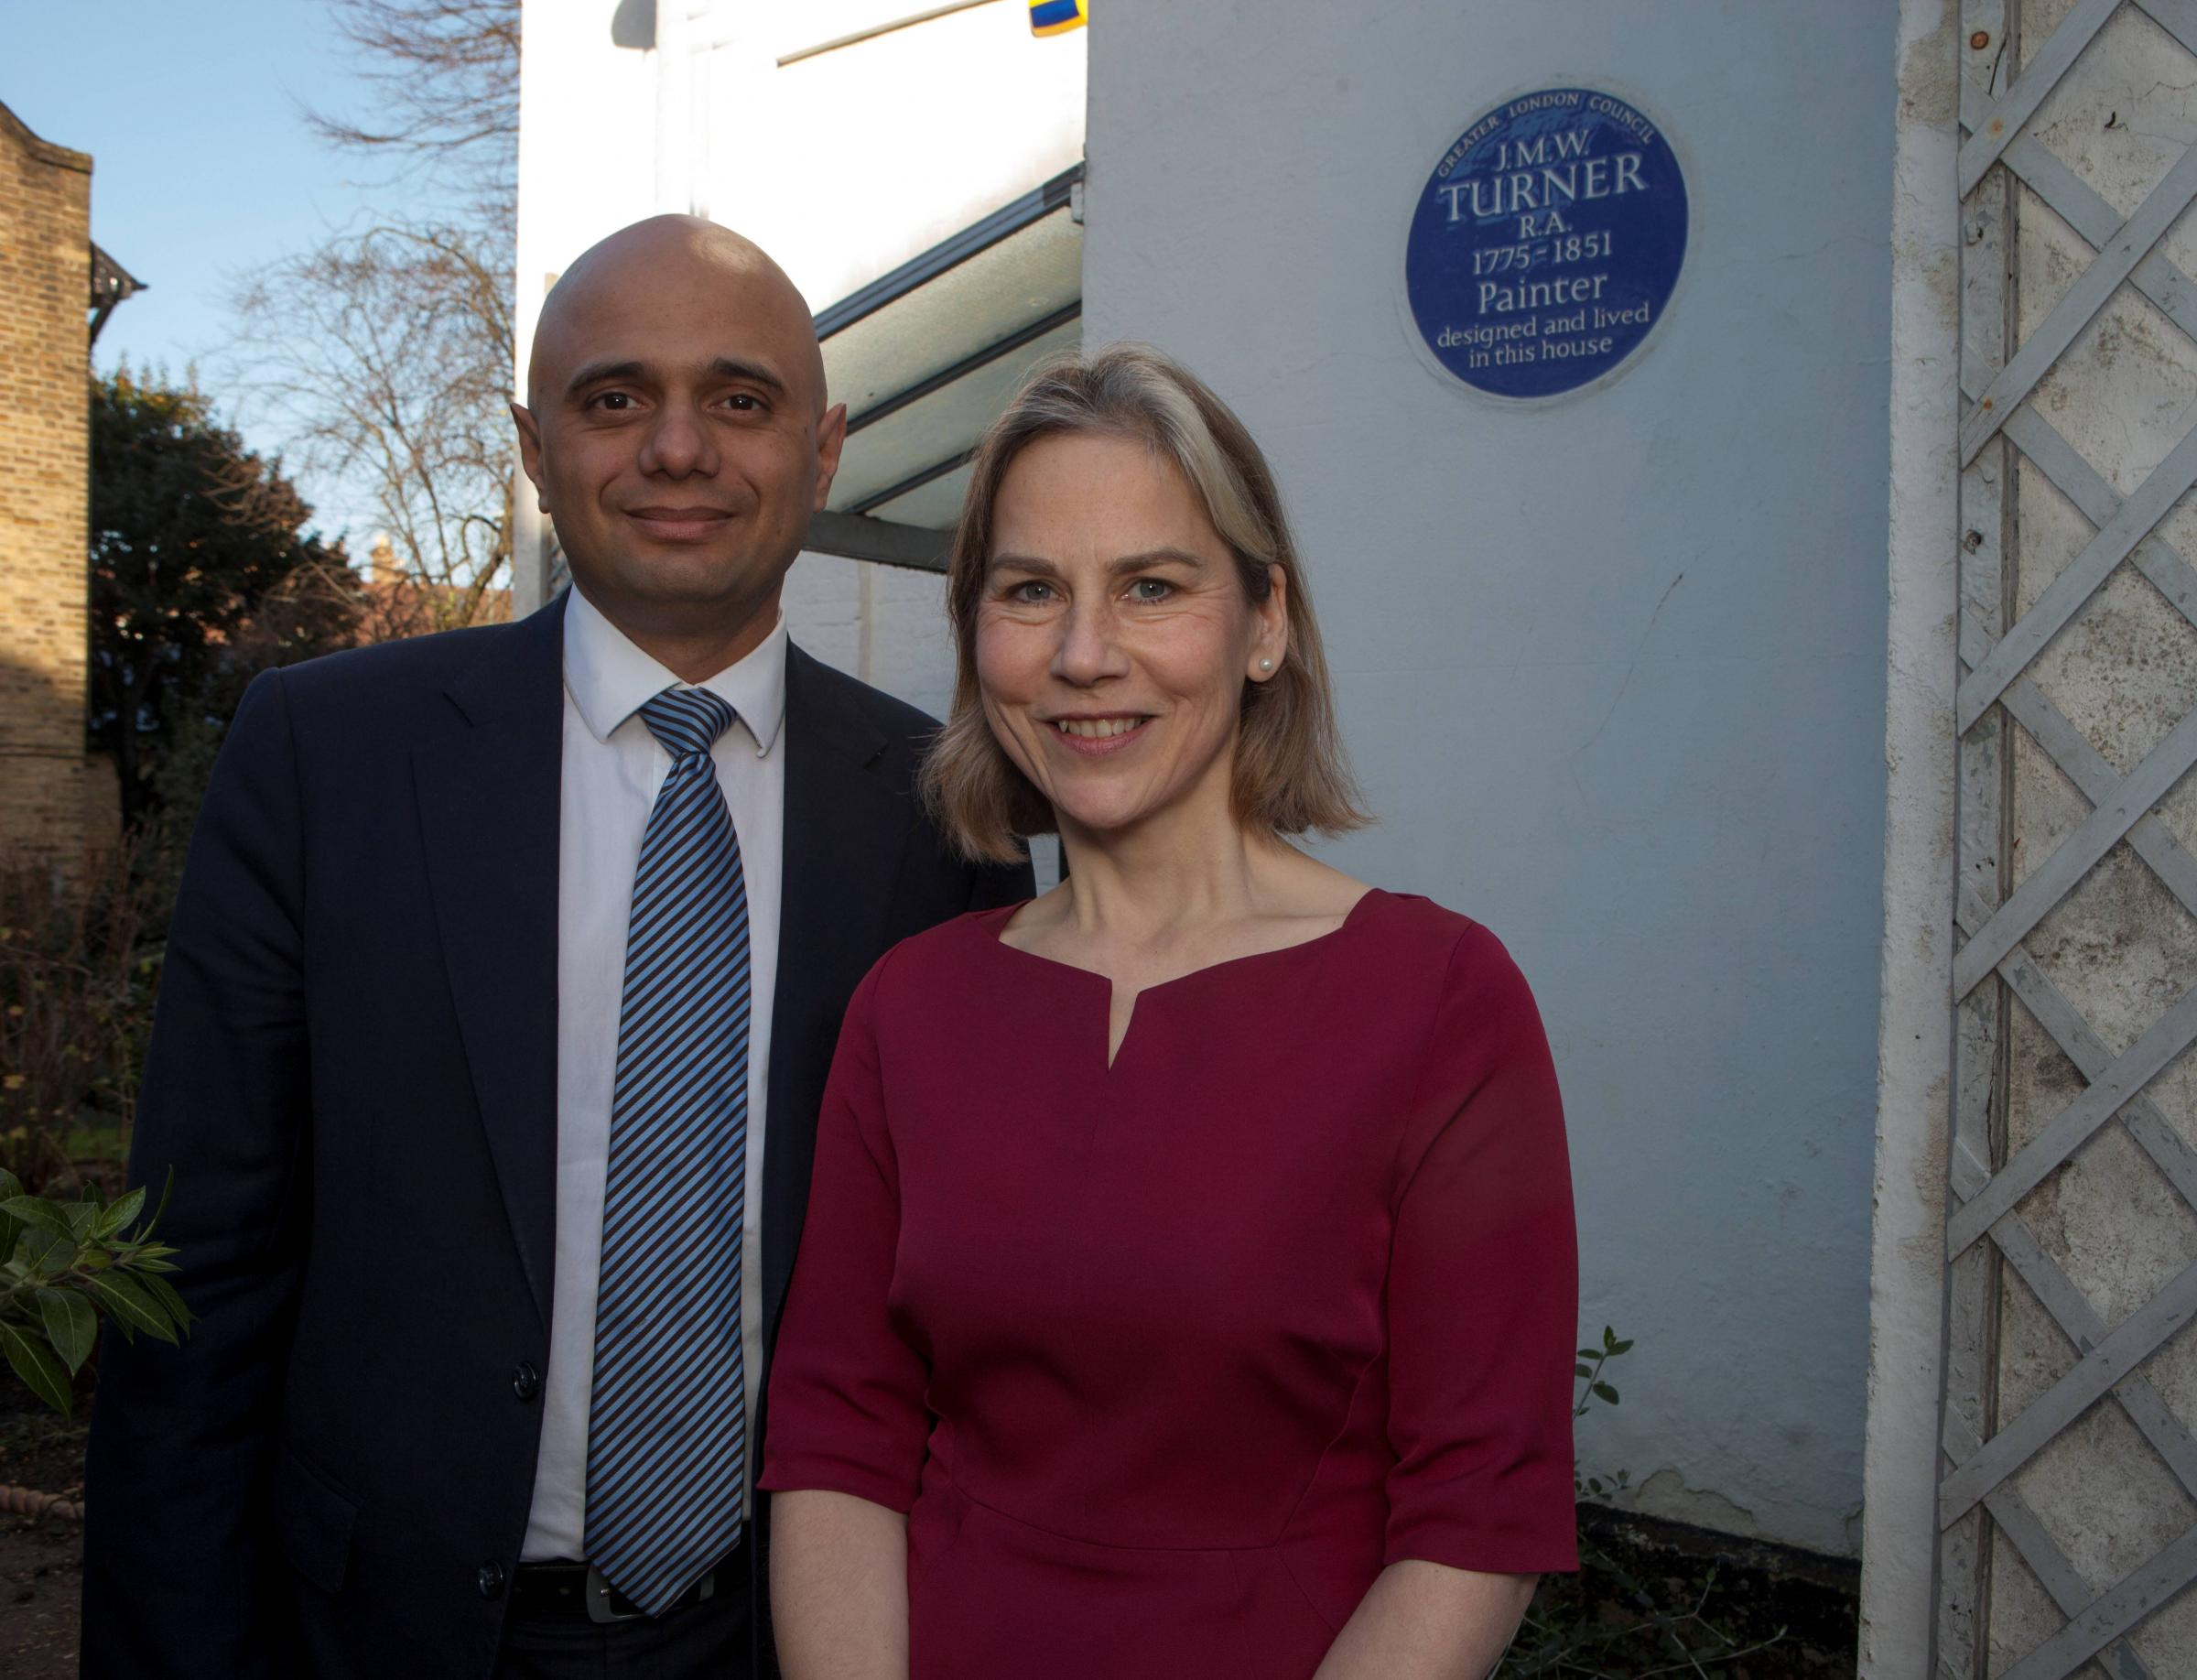 Tania Mathias with Business Secretary Sajid Javid at Turner's House before the general election